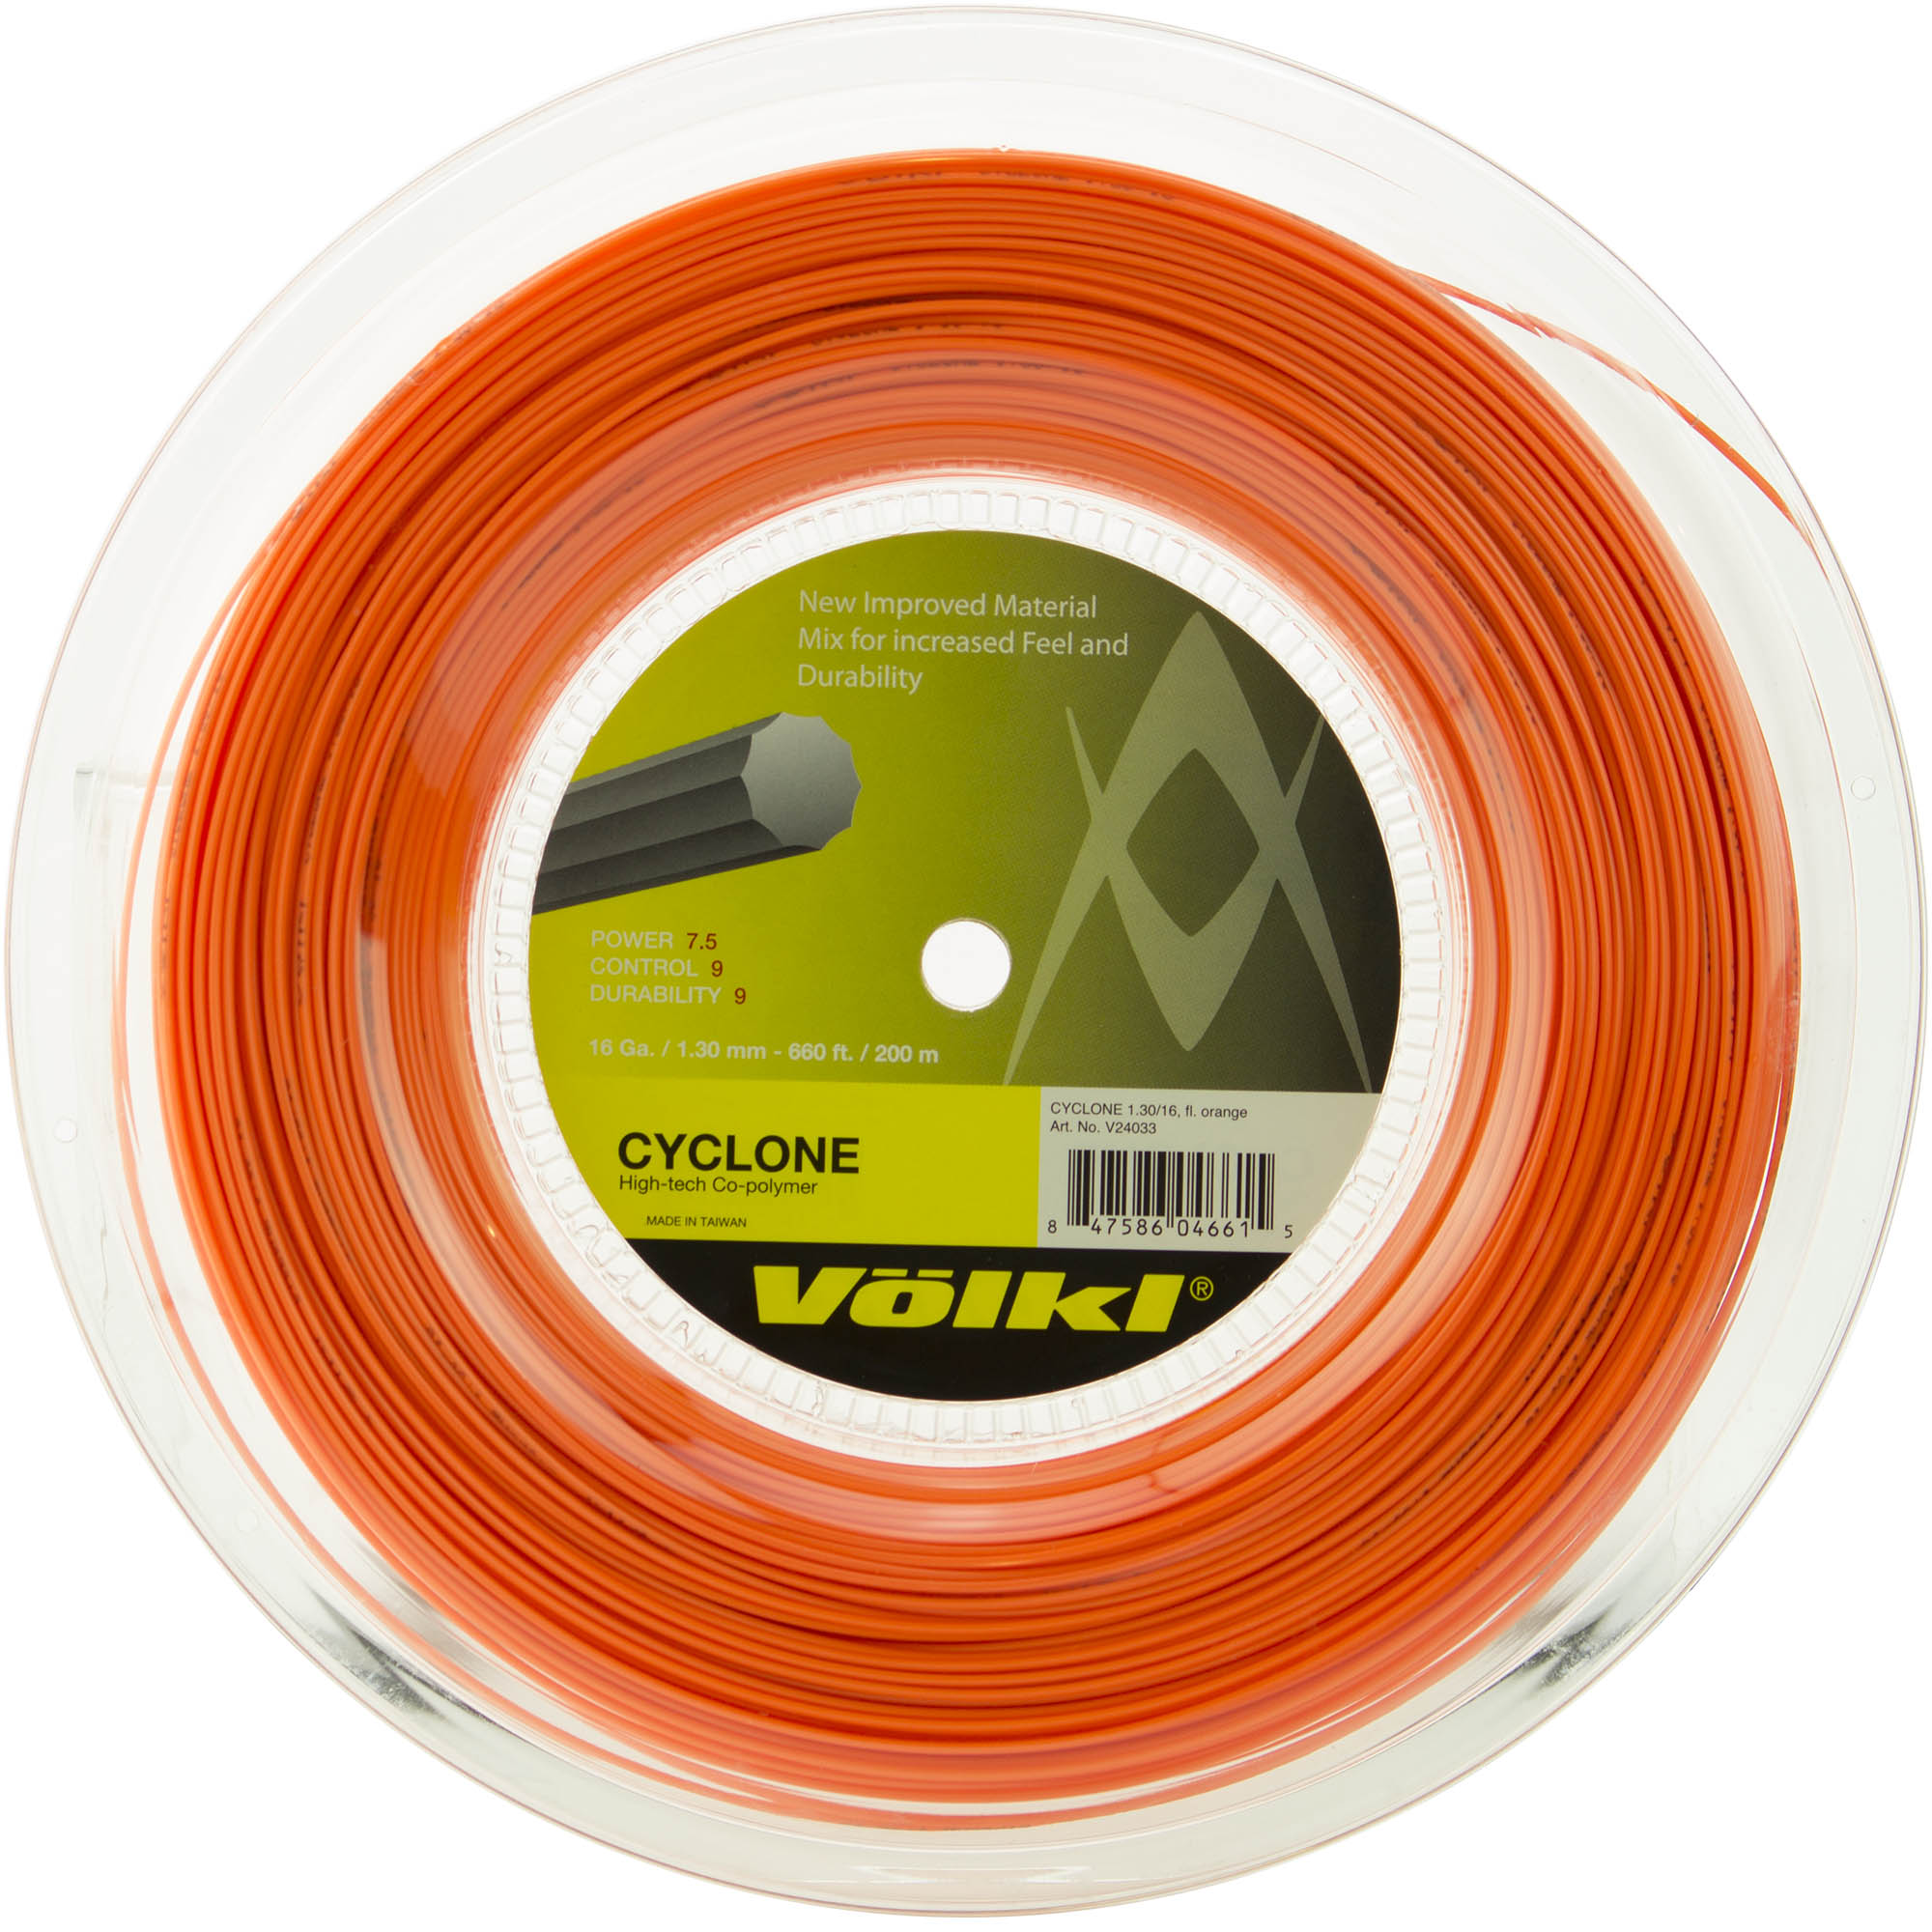 Volkl Cyclone Tennis String - 200m Reel - Orange, 1.30mm